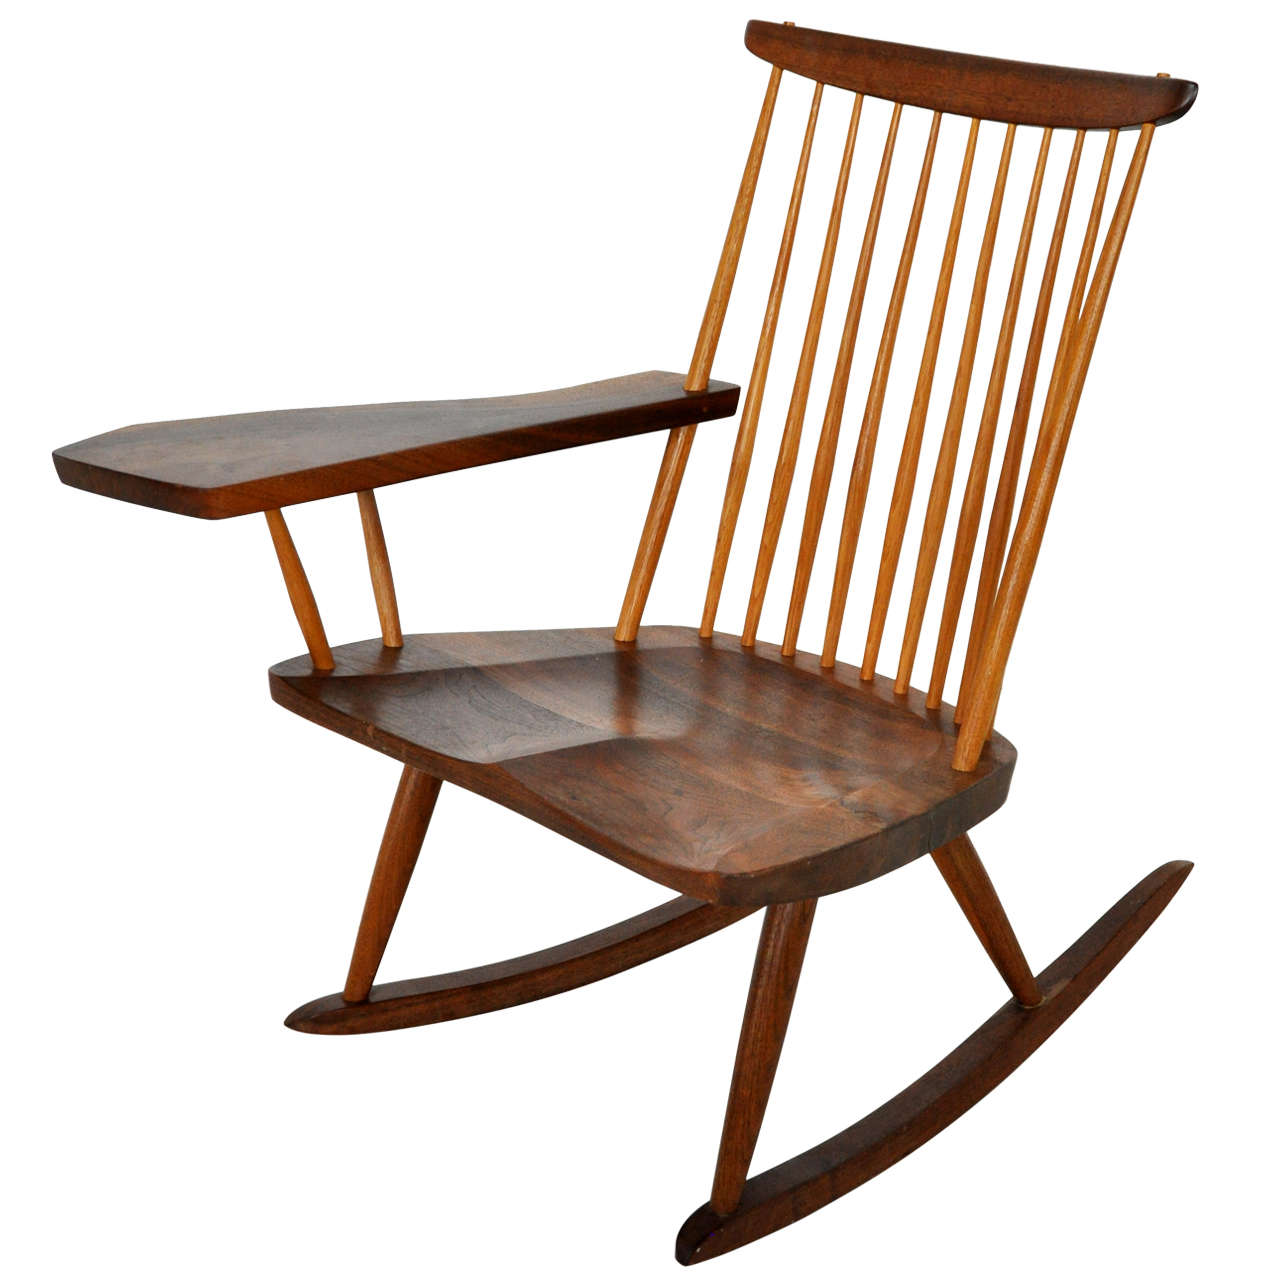 Delicieux George Nakashima Rocking Chair For Sale